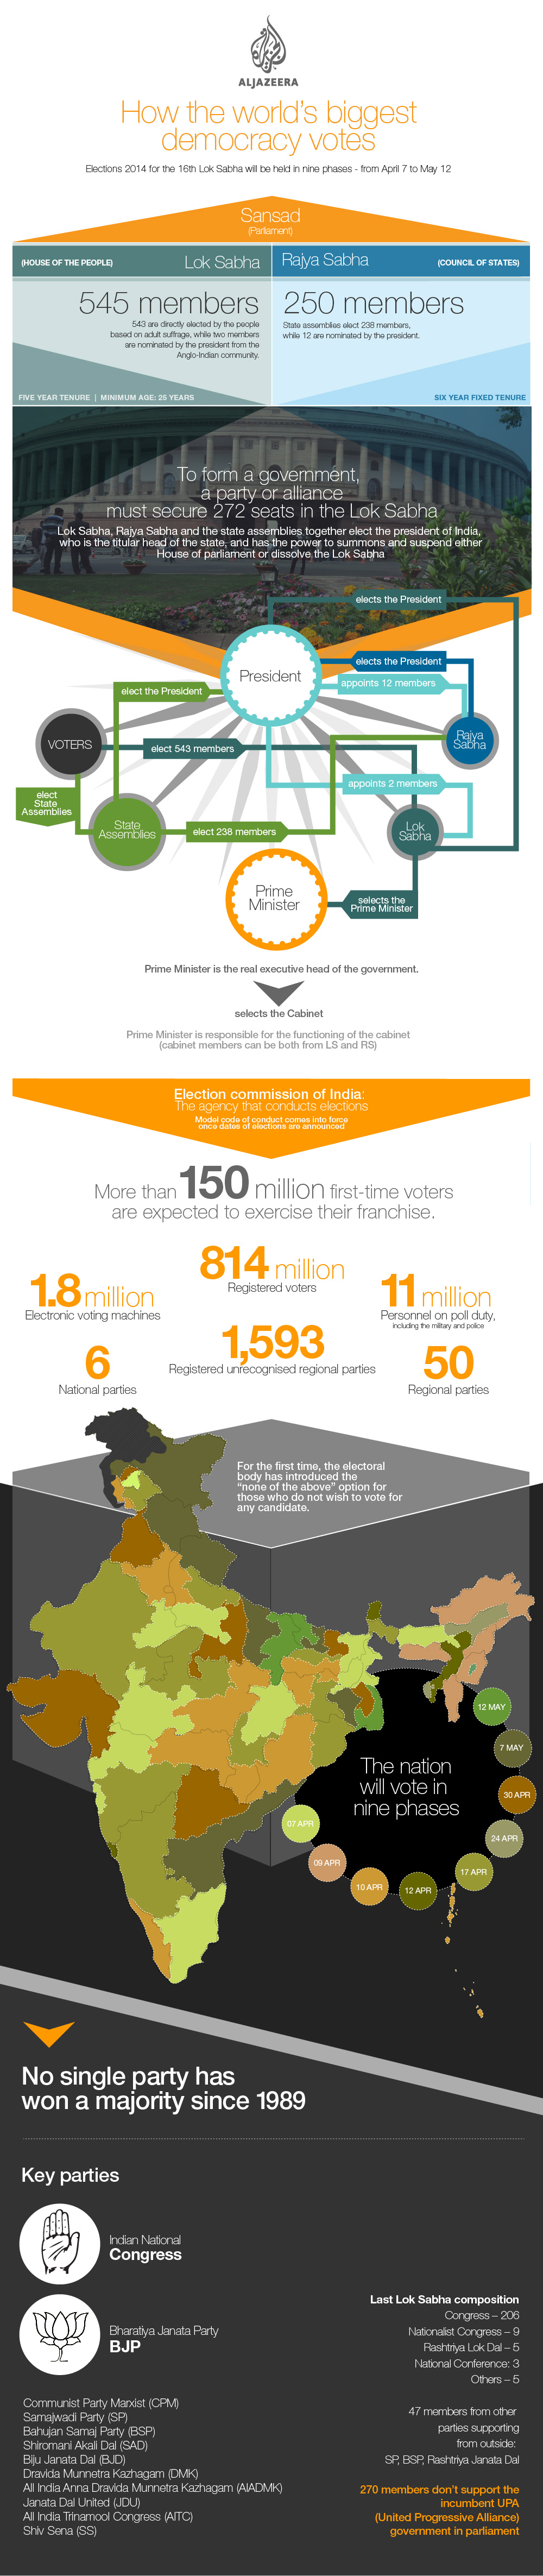 Infographic: How India forms a government | India | Al Jazeera